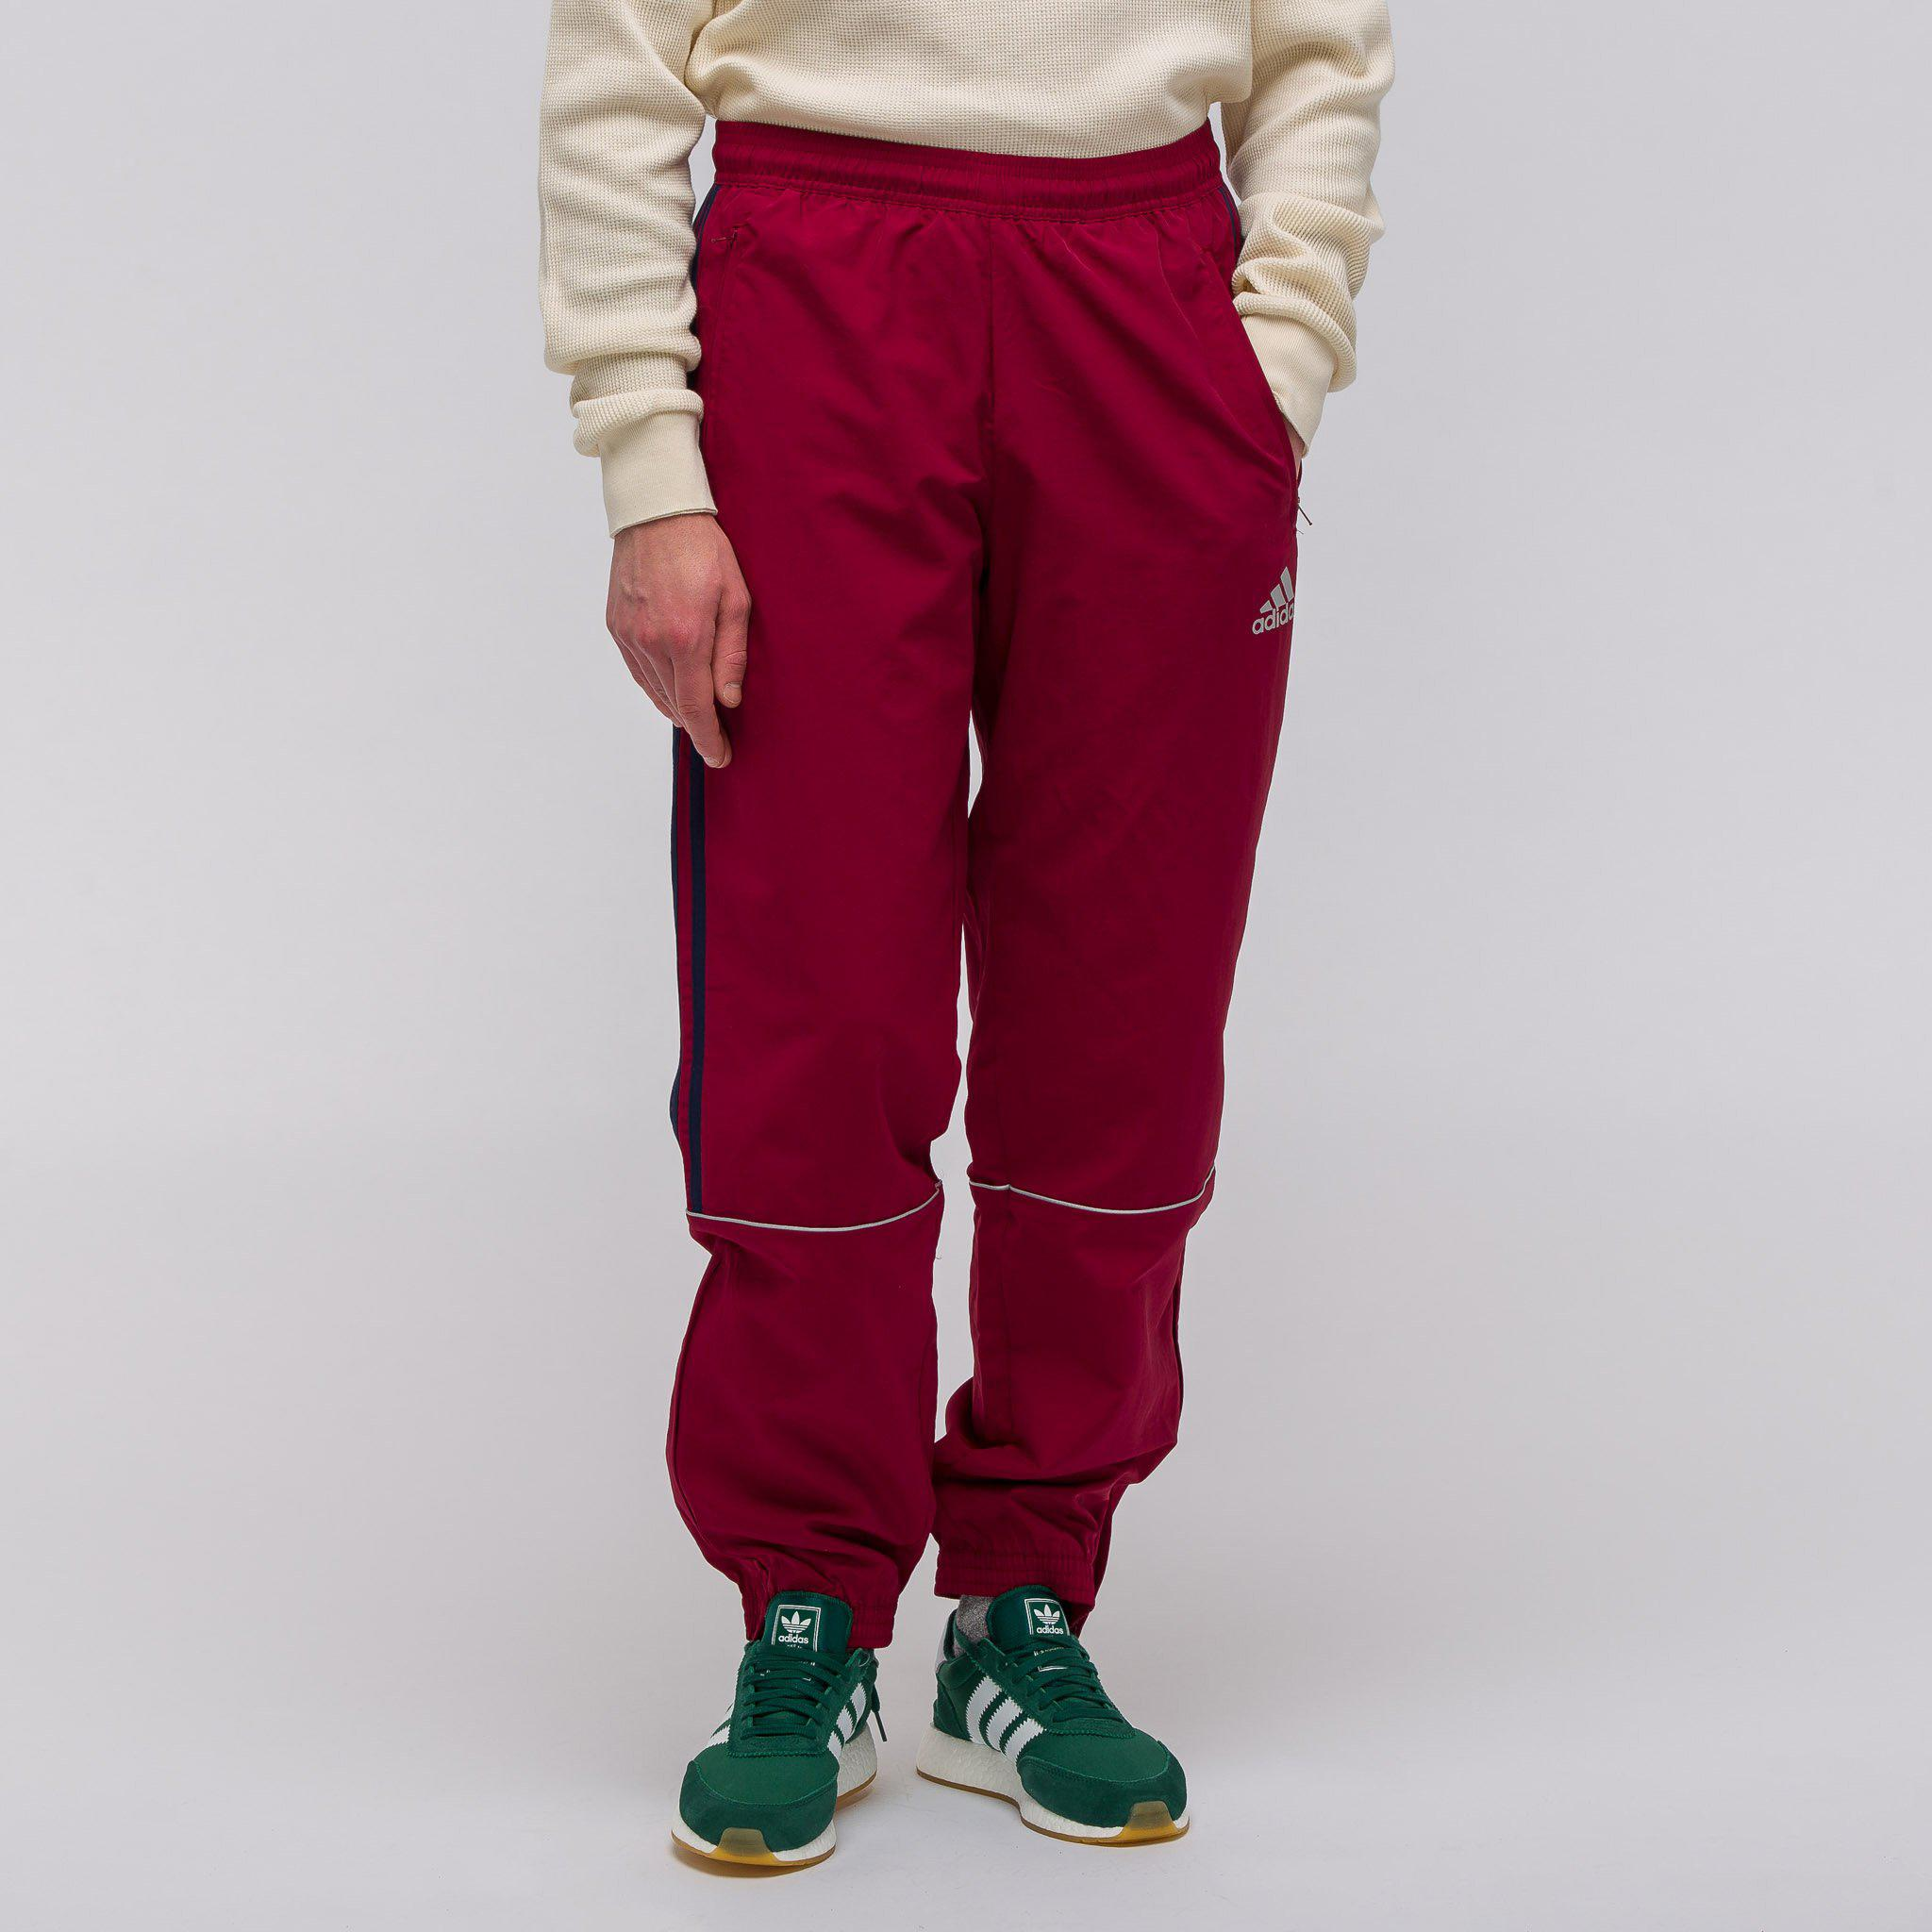 sports shoes f849e 8de84 Gosha Rubchinskiy - Red X Adidas Track Pant In Burgundy for Men - Lyst